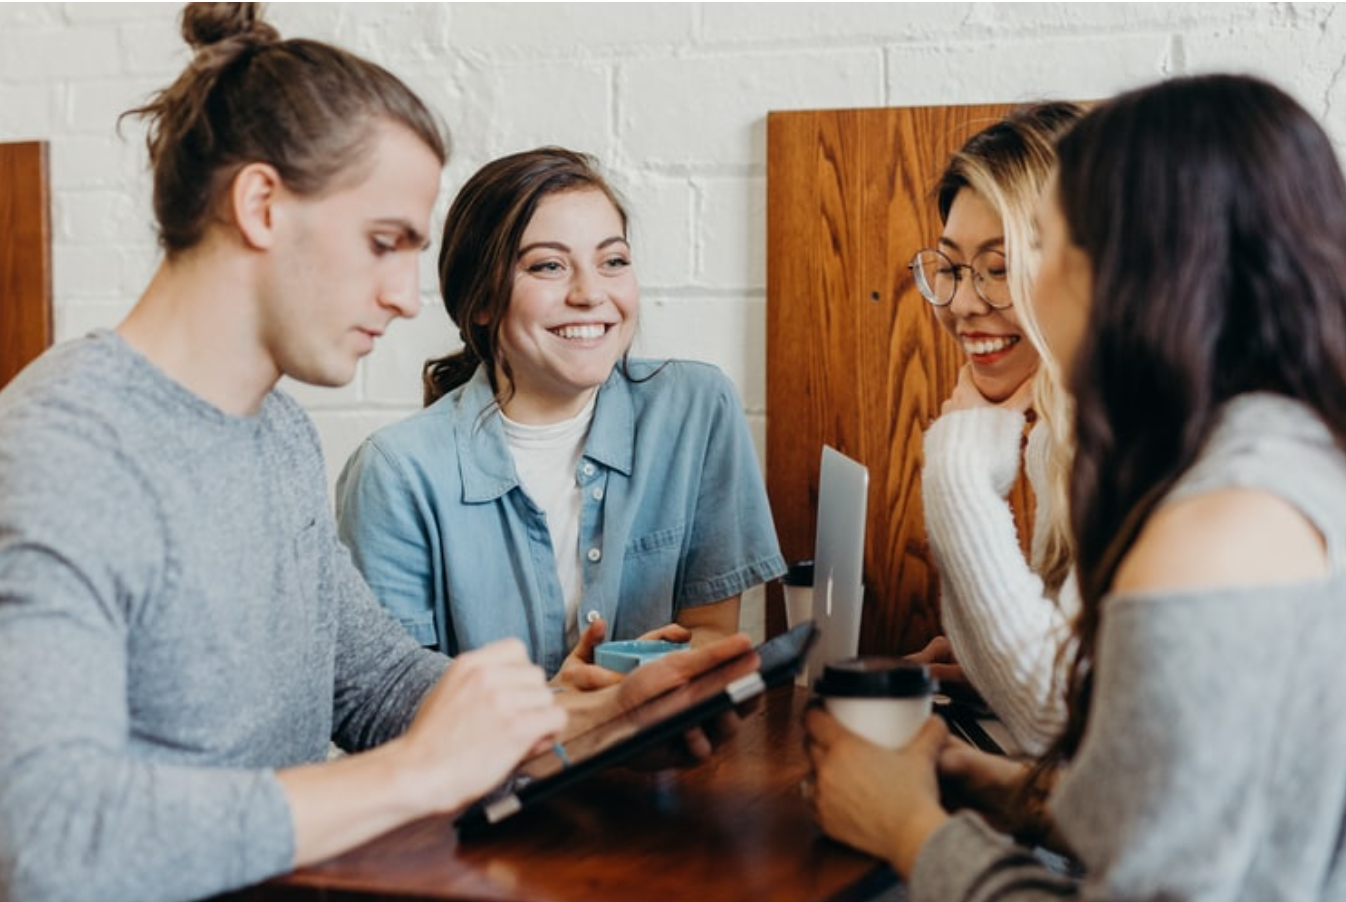 Group sitting at table with laptop and tablet and coffee; image by Brooke Cagle, via Unsplash.com.